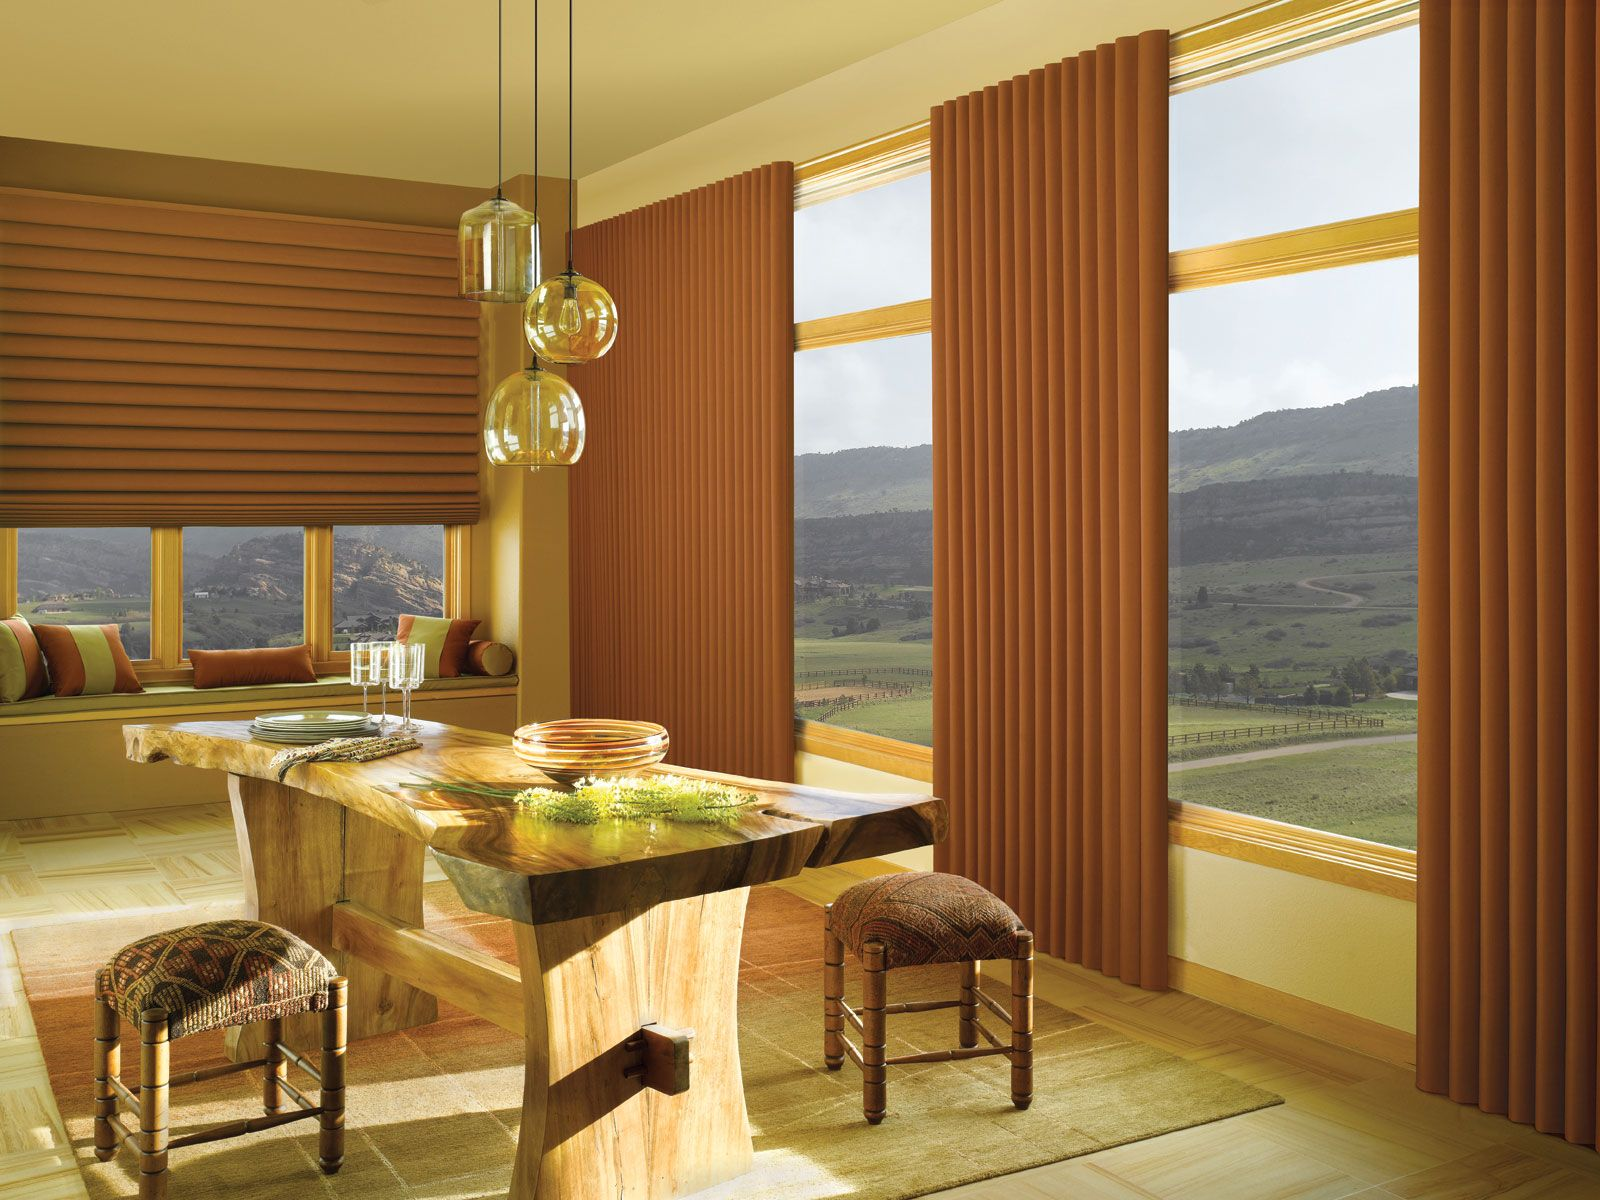 Best Hunter Douglas Vertical Solutions Images On Pinterest - Hunter douglas blinds for patio doors